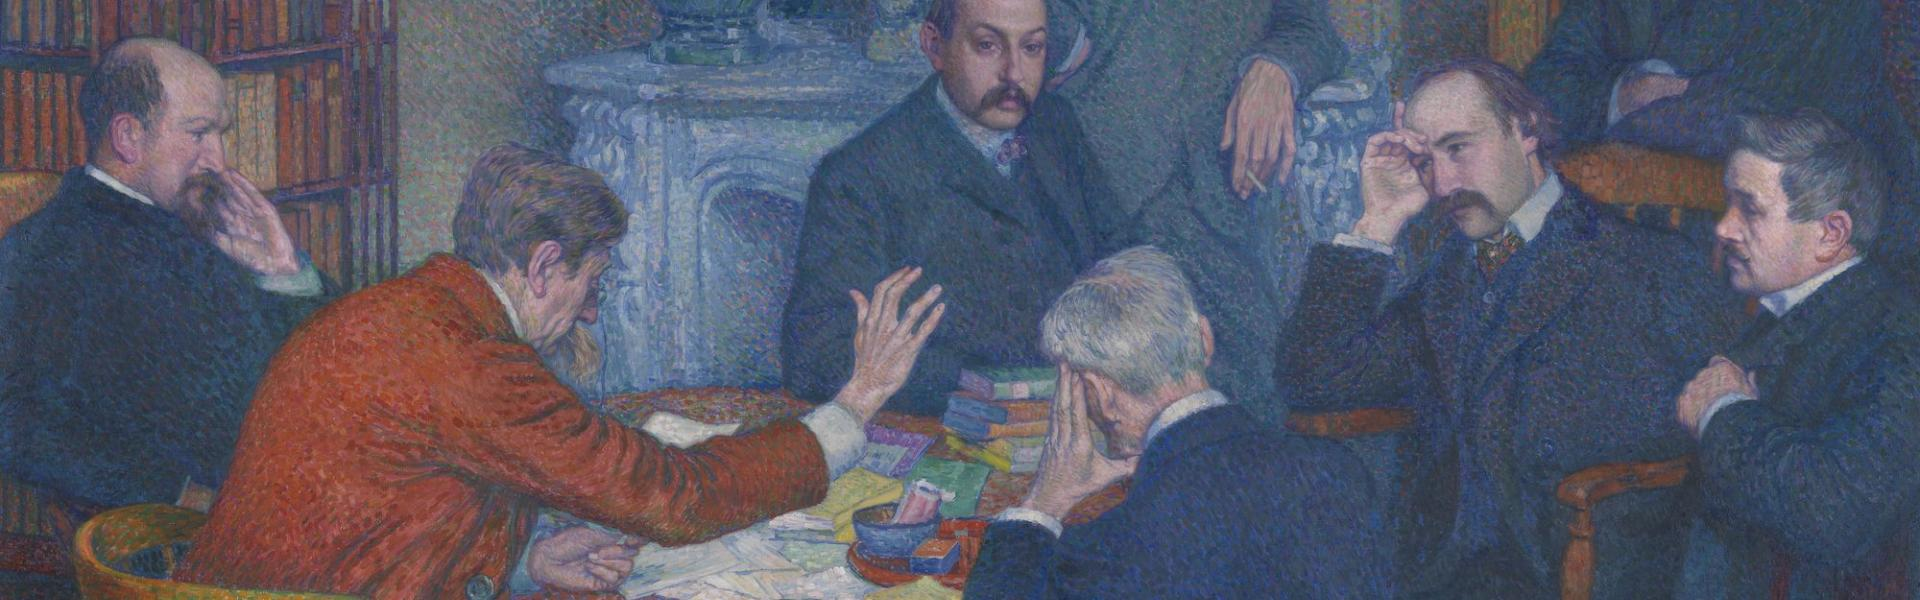 The Lecture by Emile Verhaeren by Theo Van Rysselberghe collection MSK Gent